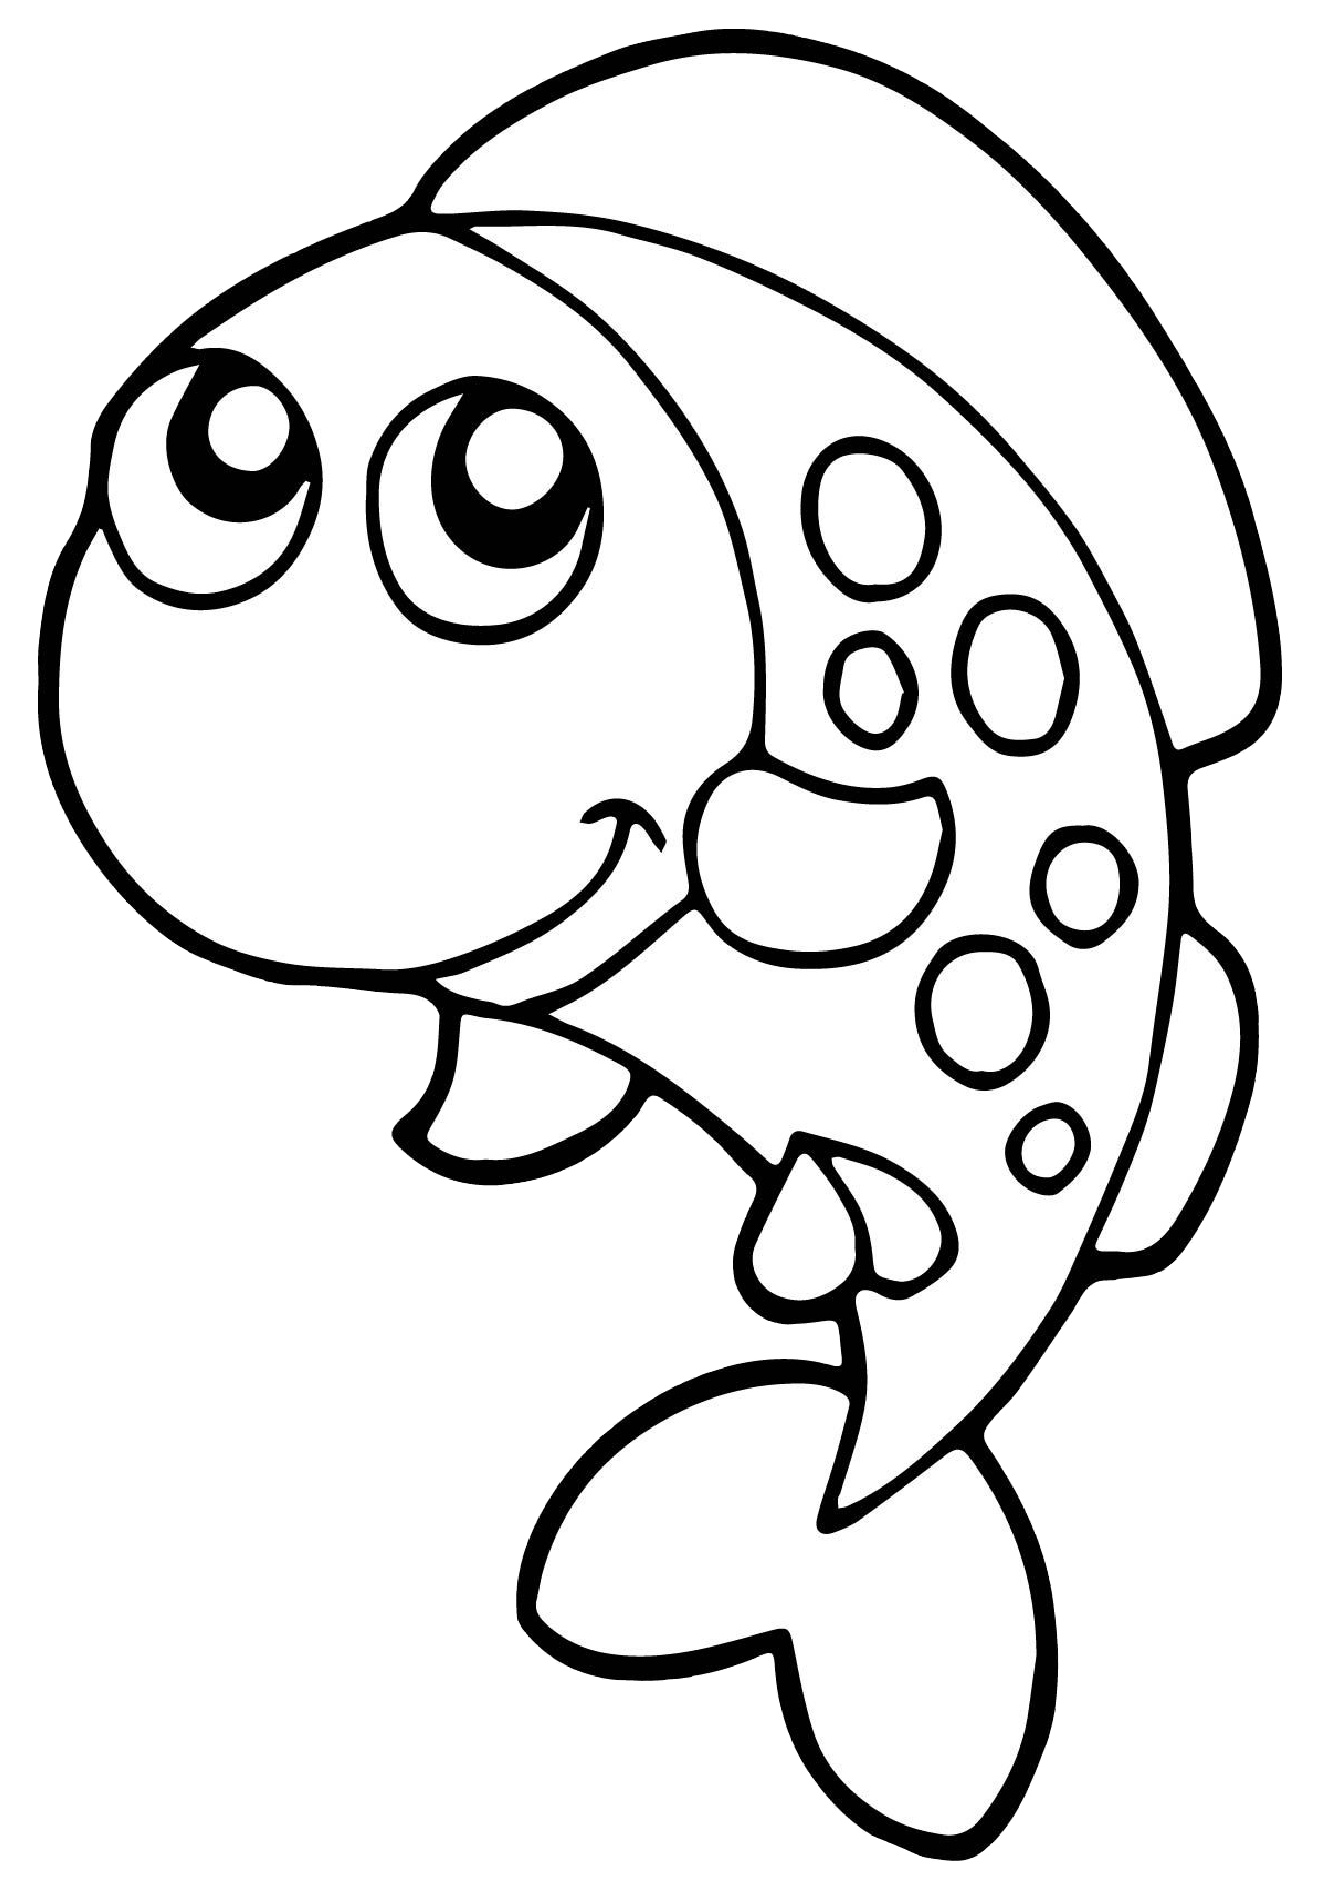 Easy to Draw and Color Fish Coloring Pages for Preschool Toddlers - Print  Color Craft